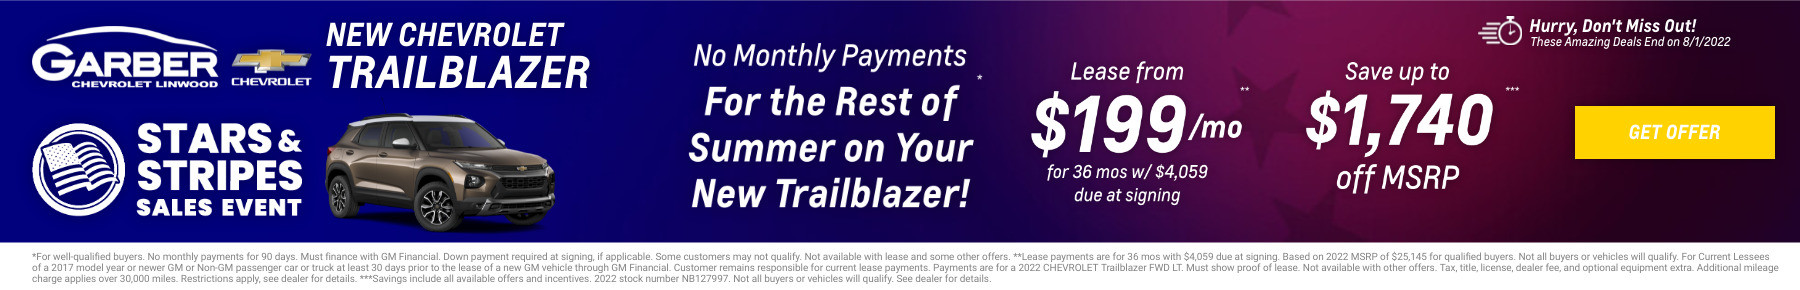 New Chevrolet Trailblazer Current Deals and Offers in Linwood, MI